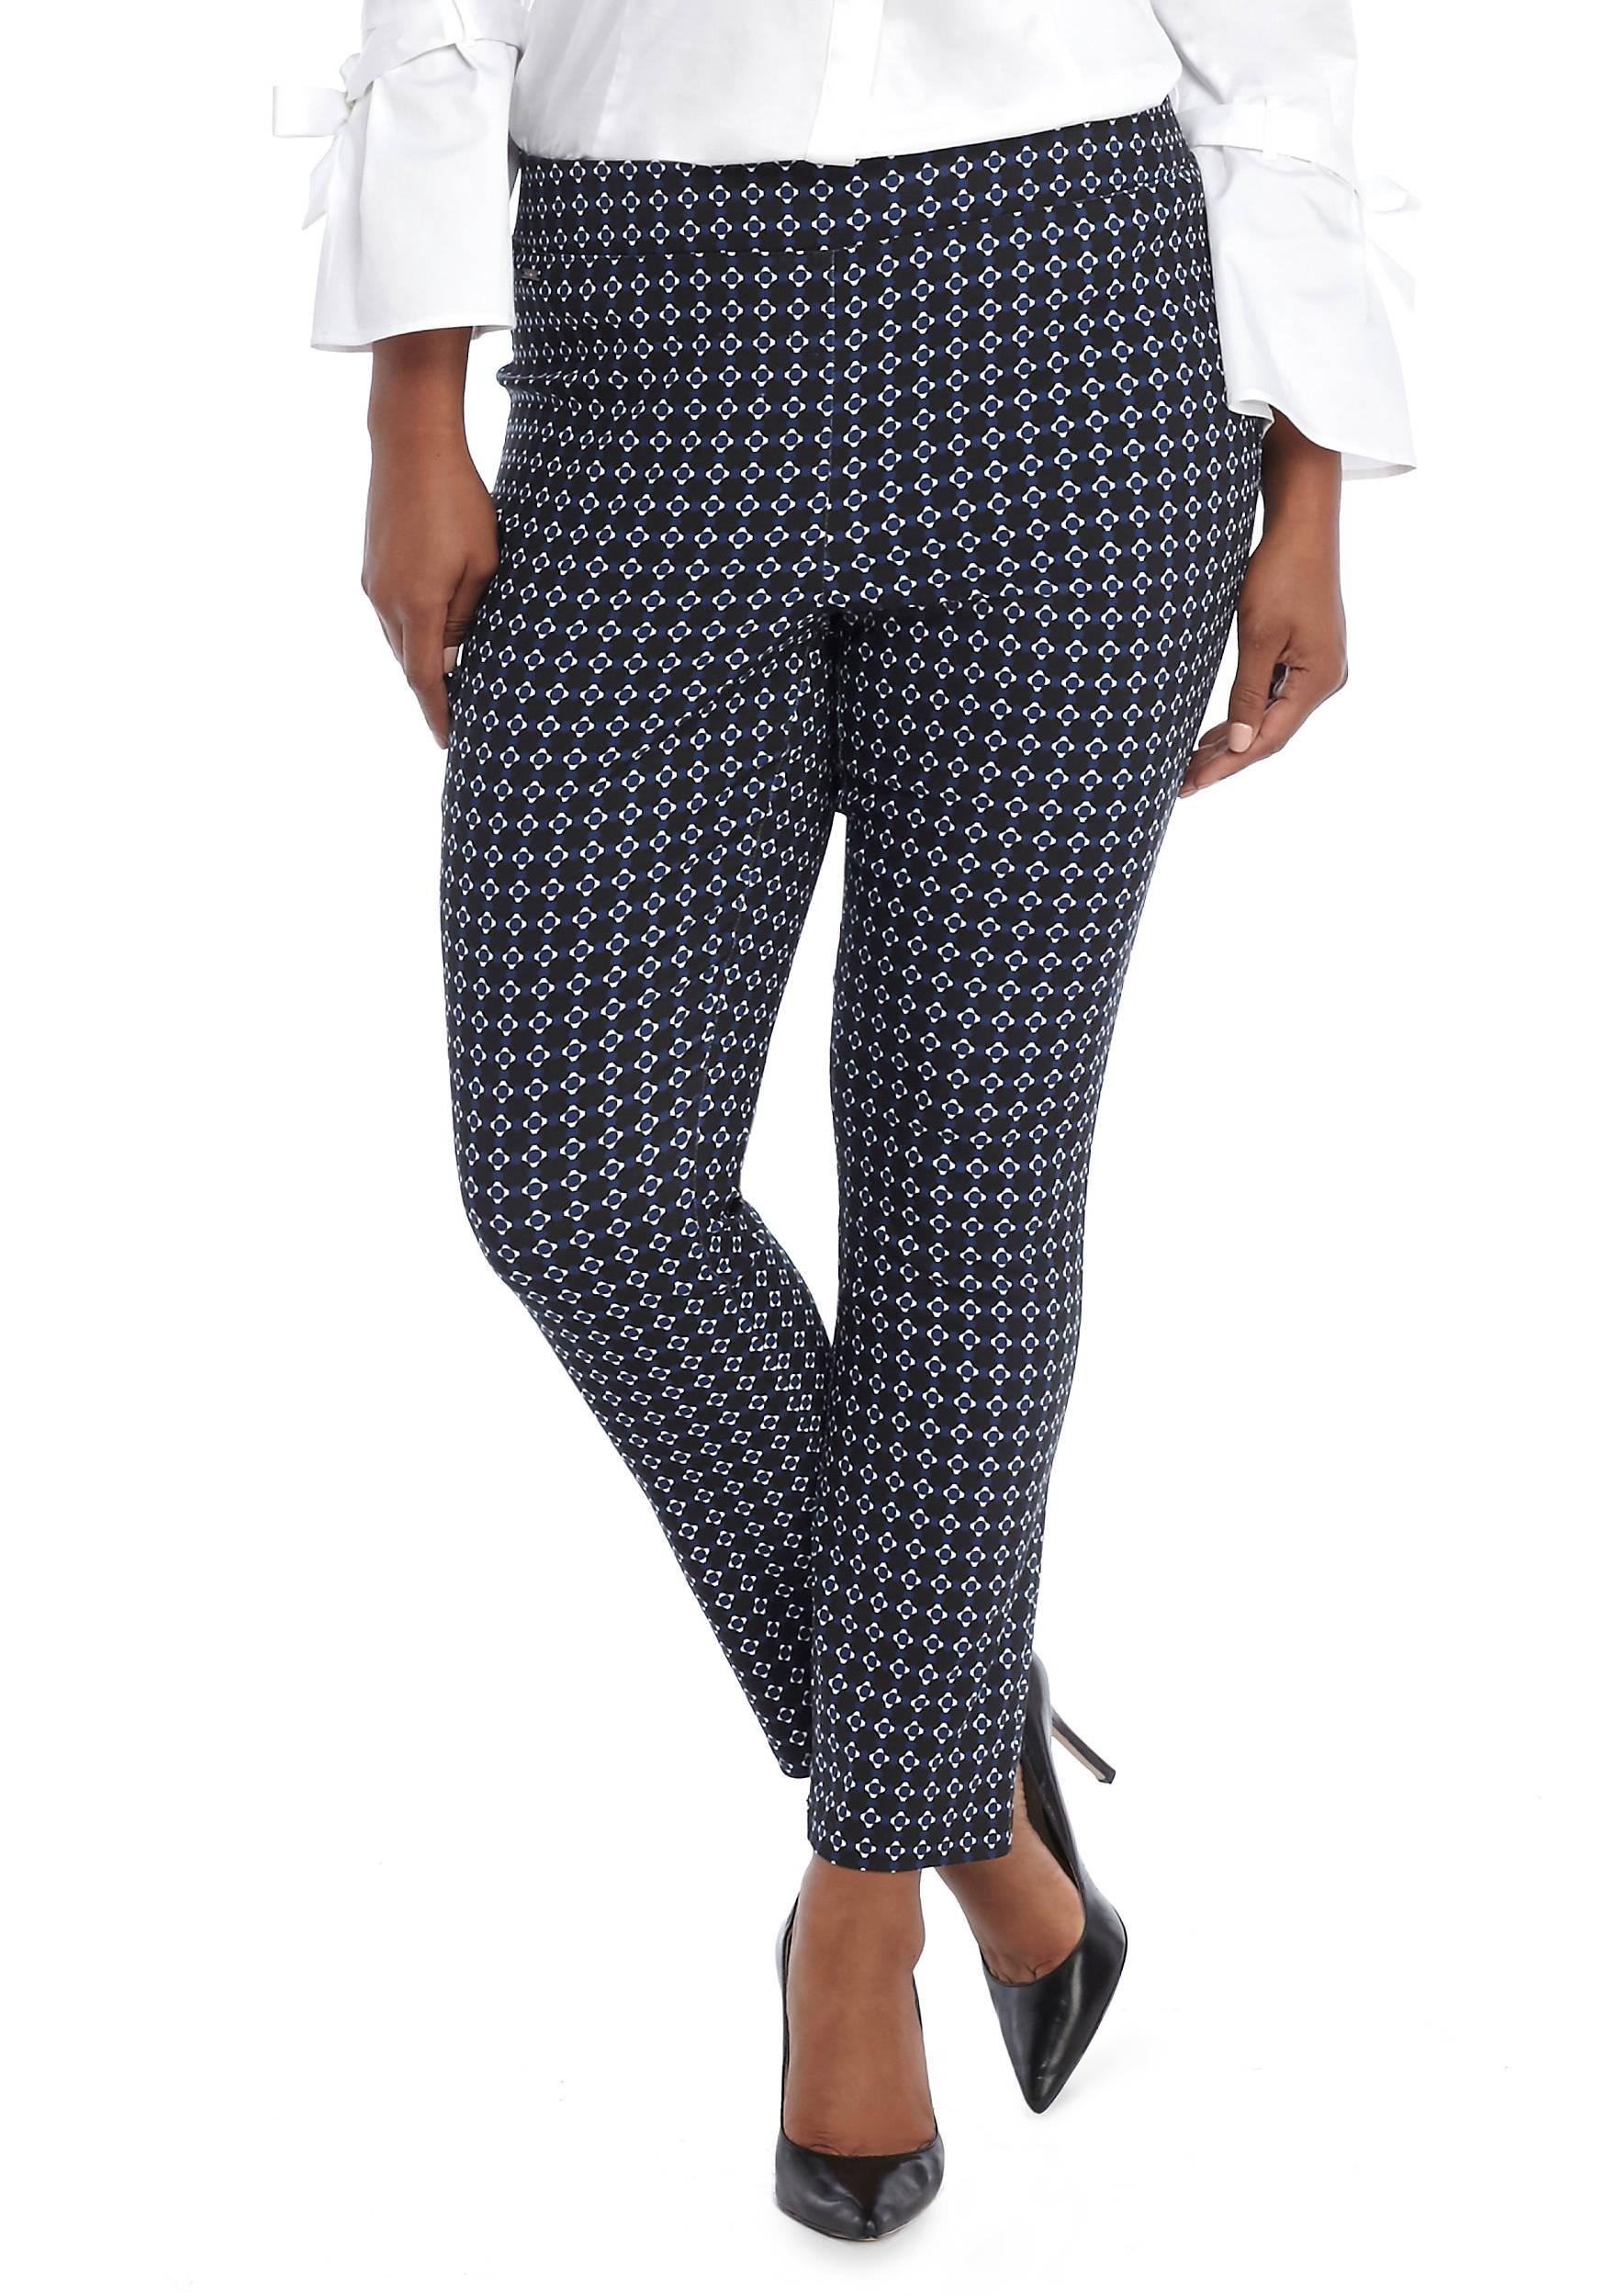 e850559c448 Lyst - The Limited Plus Size Signature Pull-on Skinny Pant In Exact ...